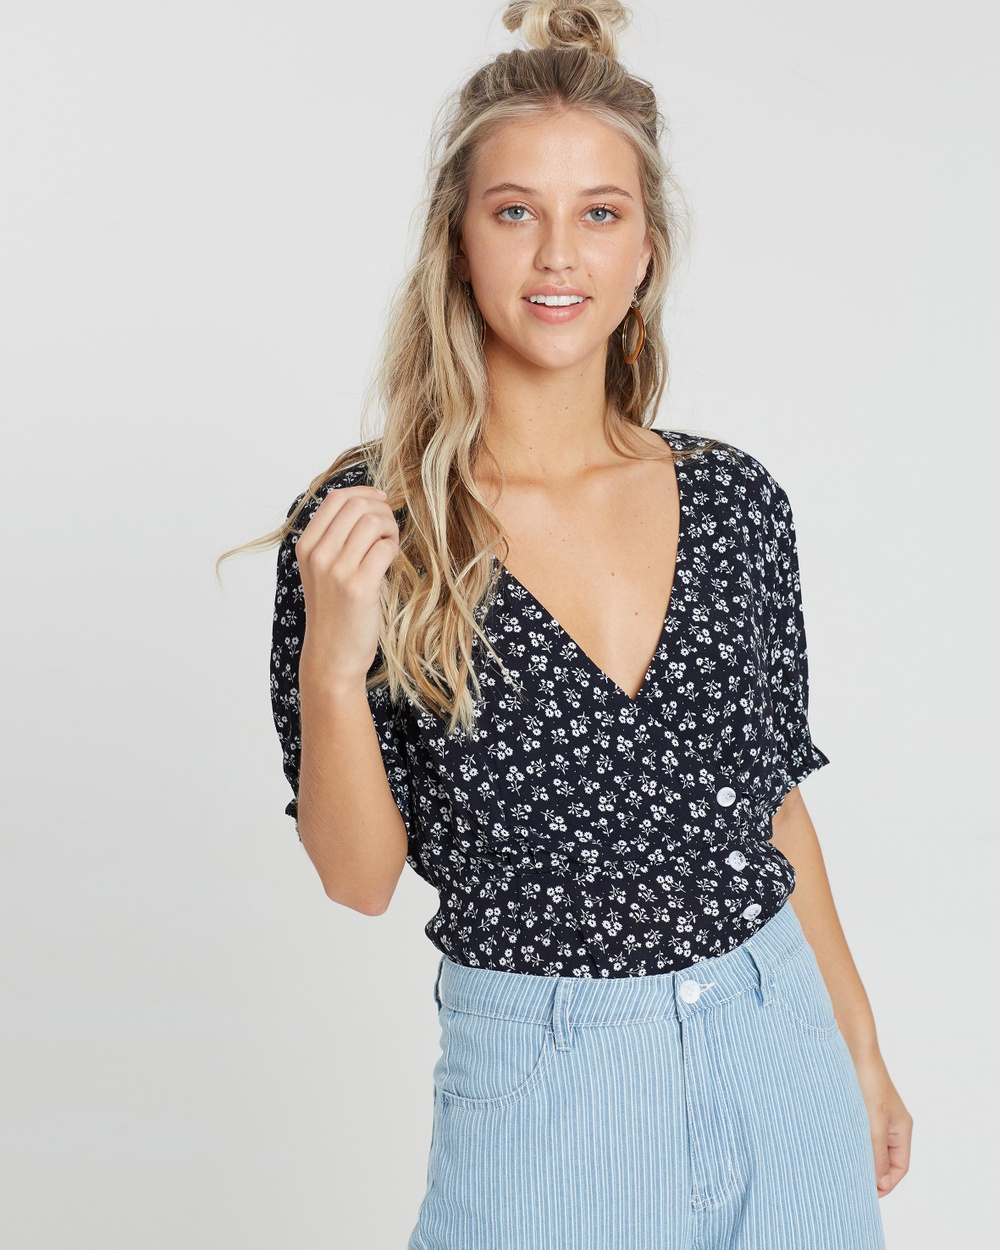 MINKPINK Home Sweet Home Top Cropped tops Black & White Home Sweet Home Top